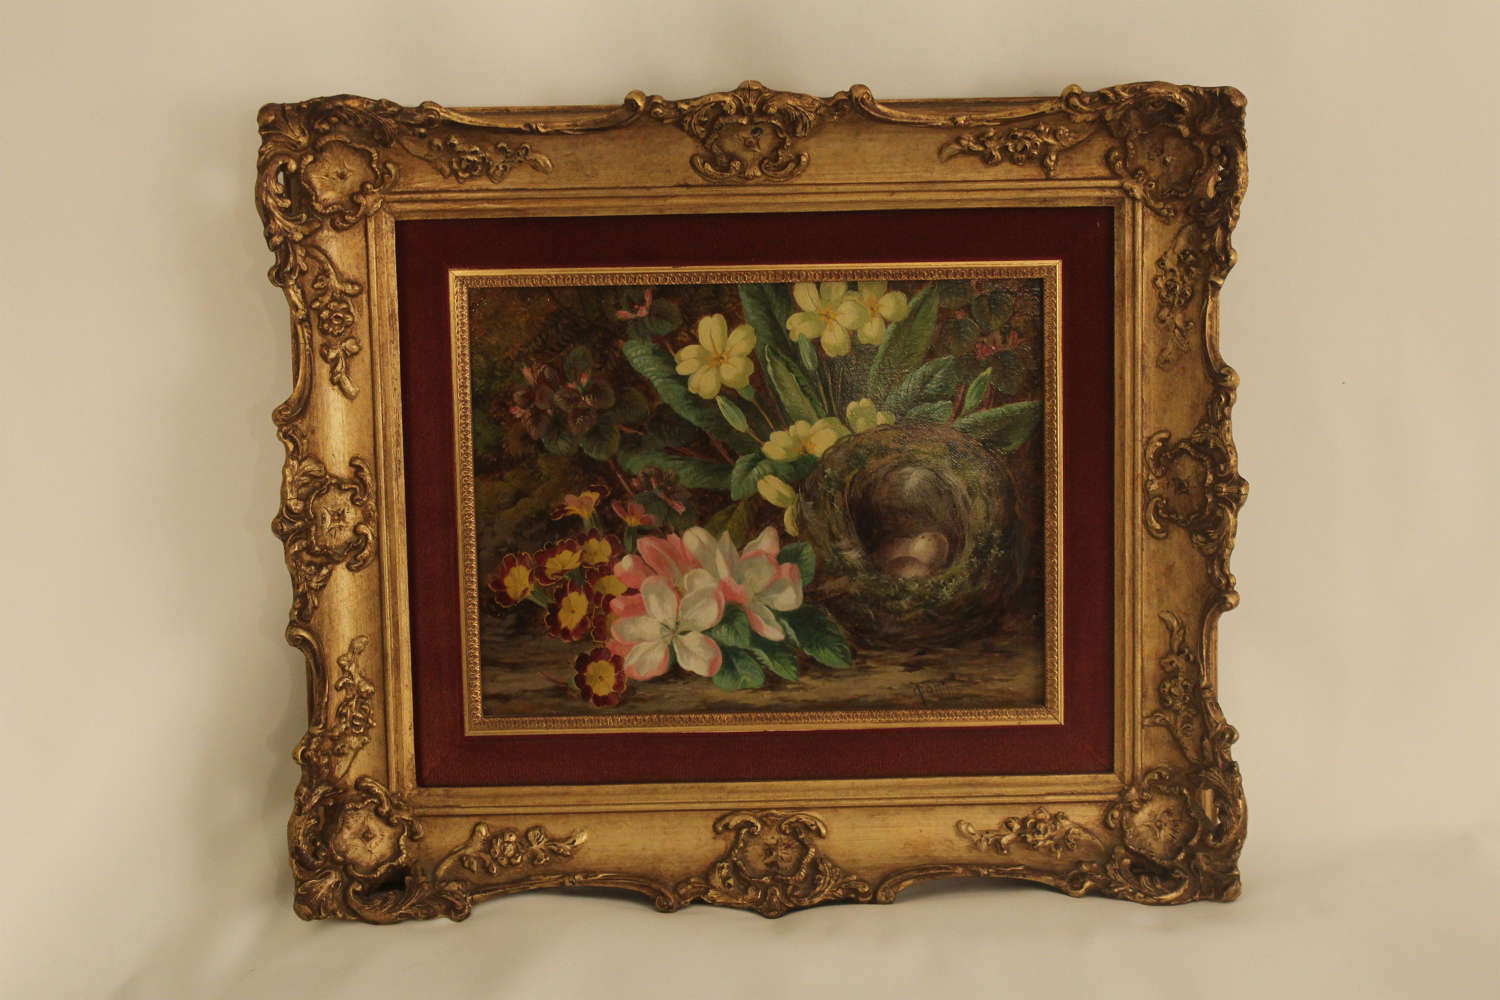 Thomas Collins 1893, A Good Pair of Still life Oil Paintings on Canvas